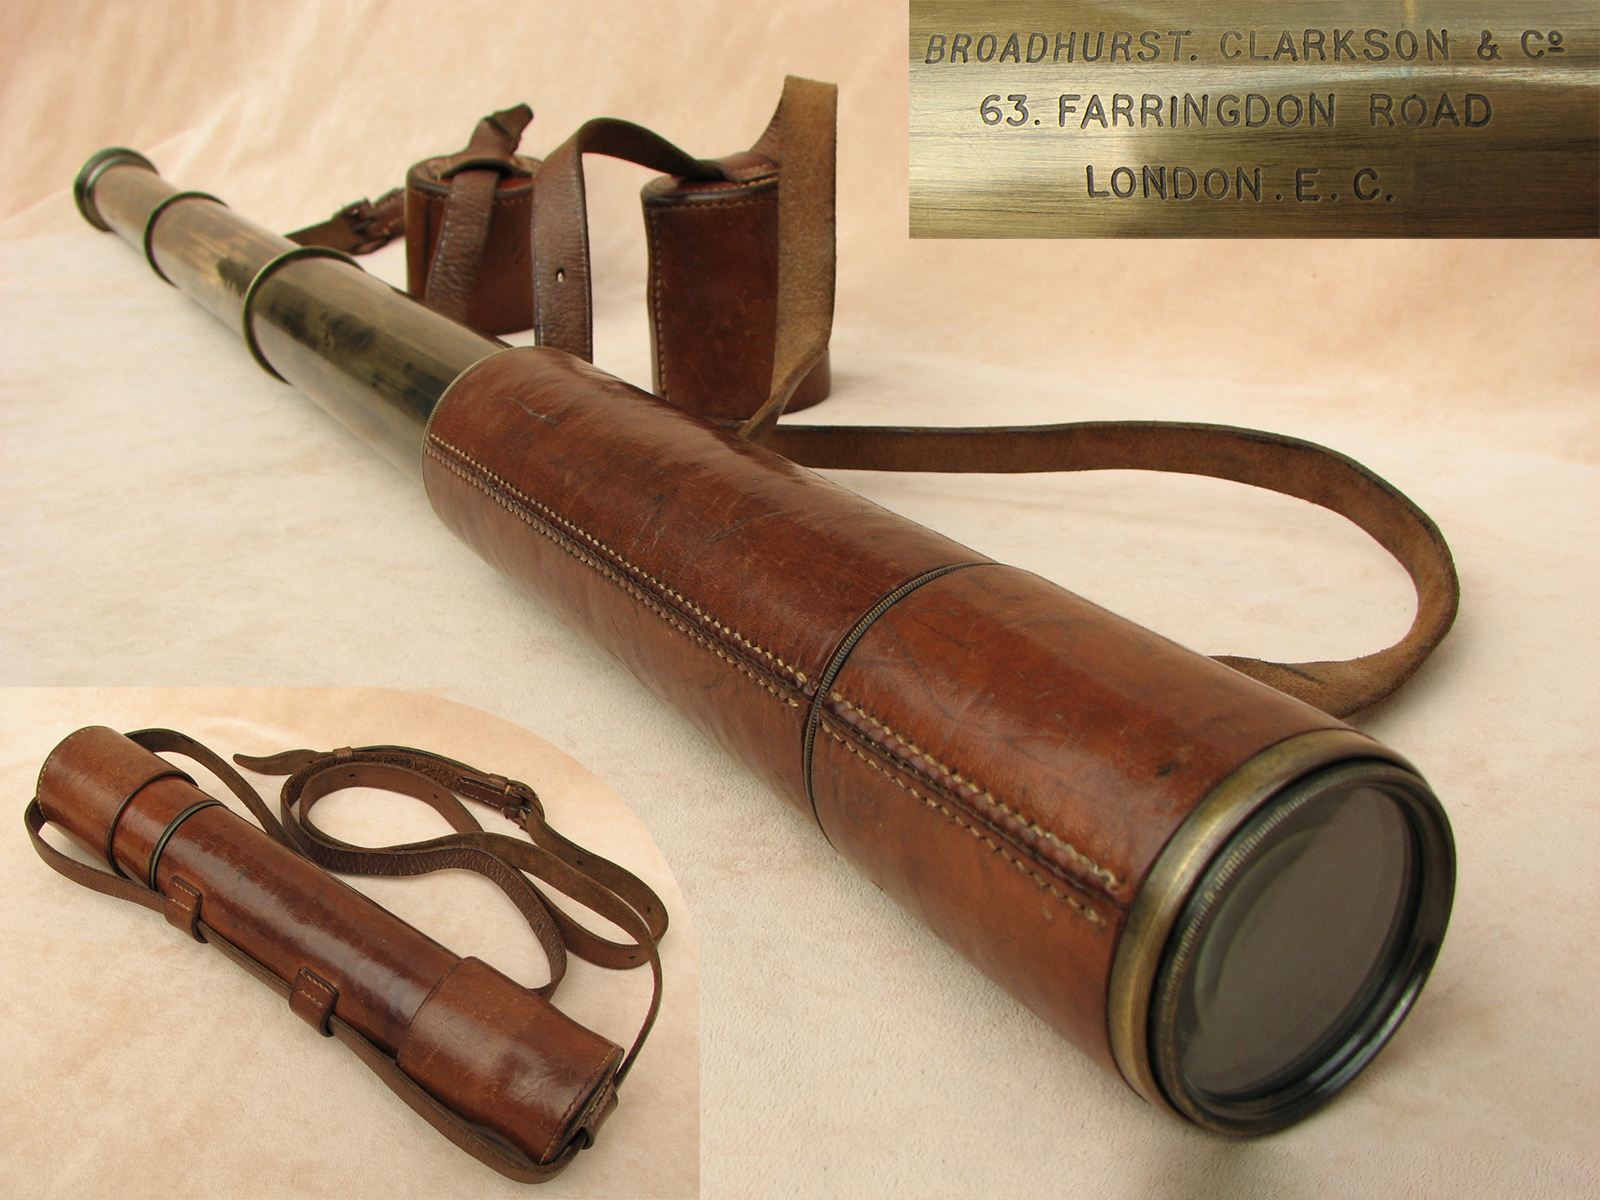 Powerful 25x-40x variable magnification field 'Tourist' telescope by Broadhurst Clarkson